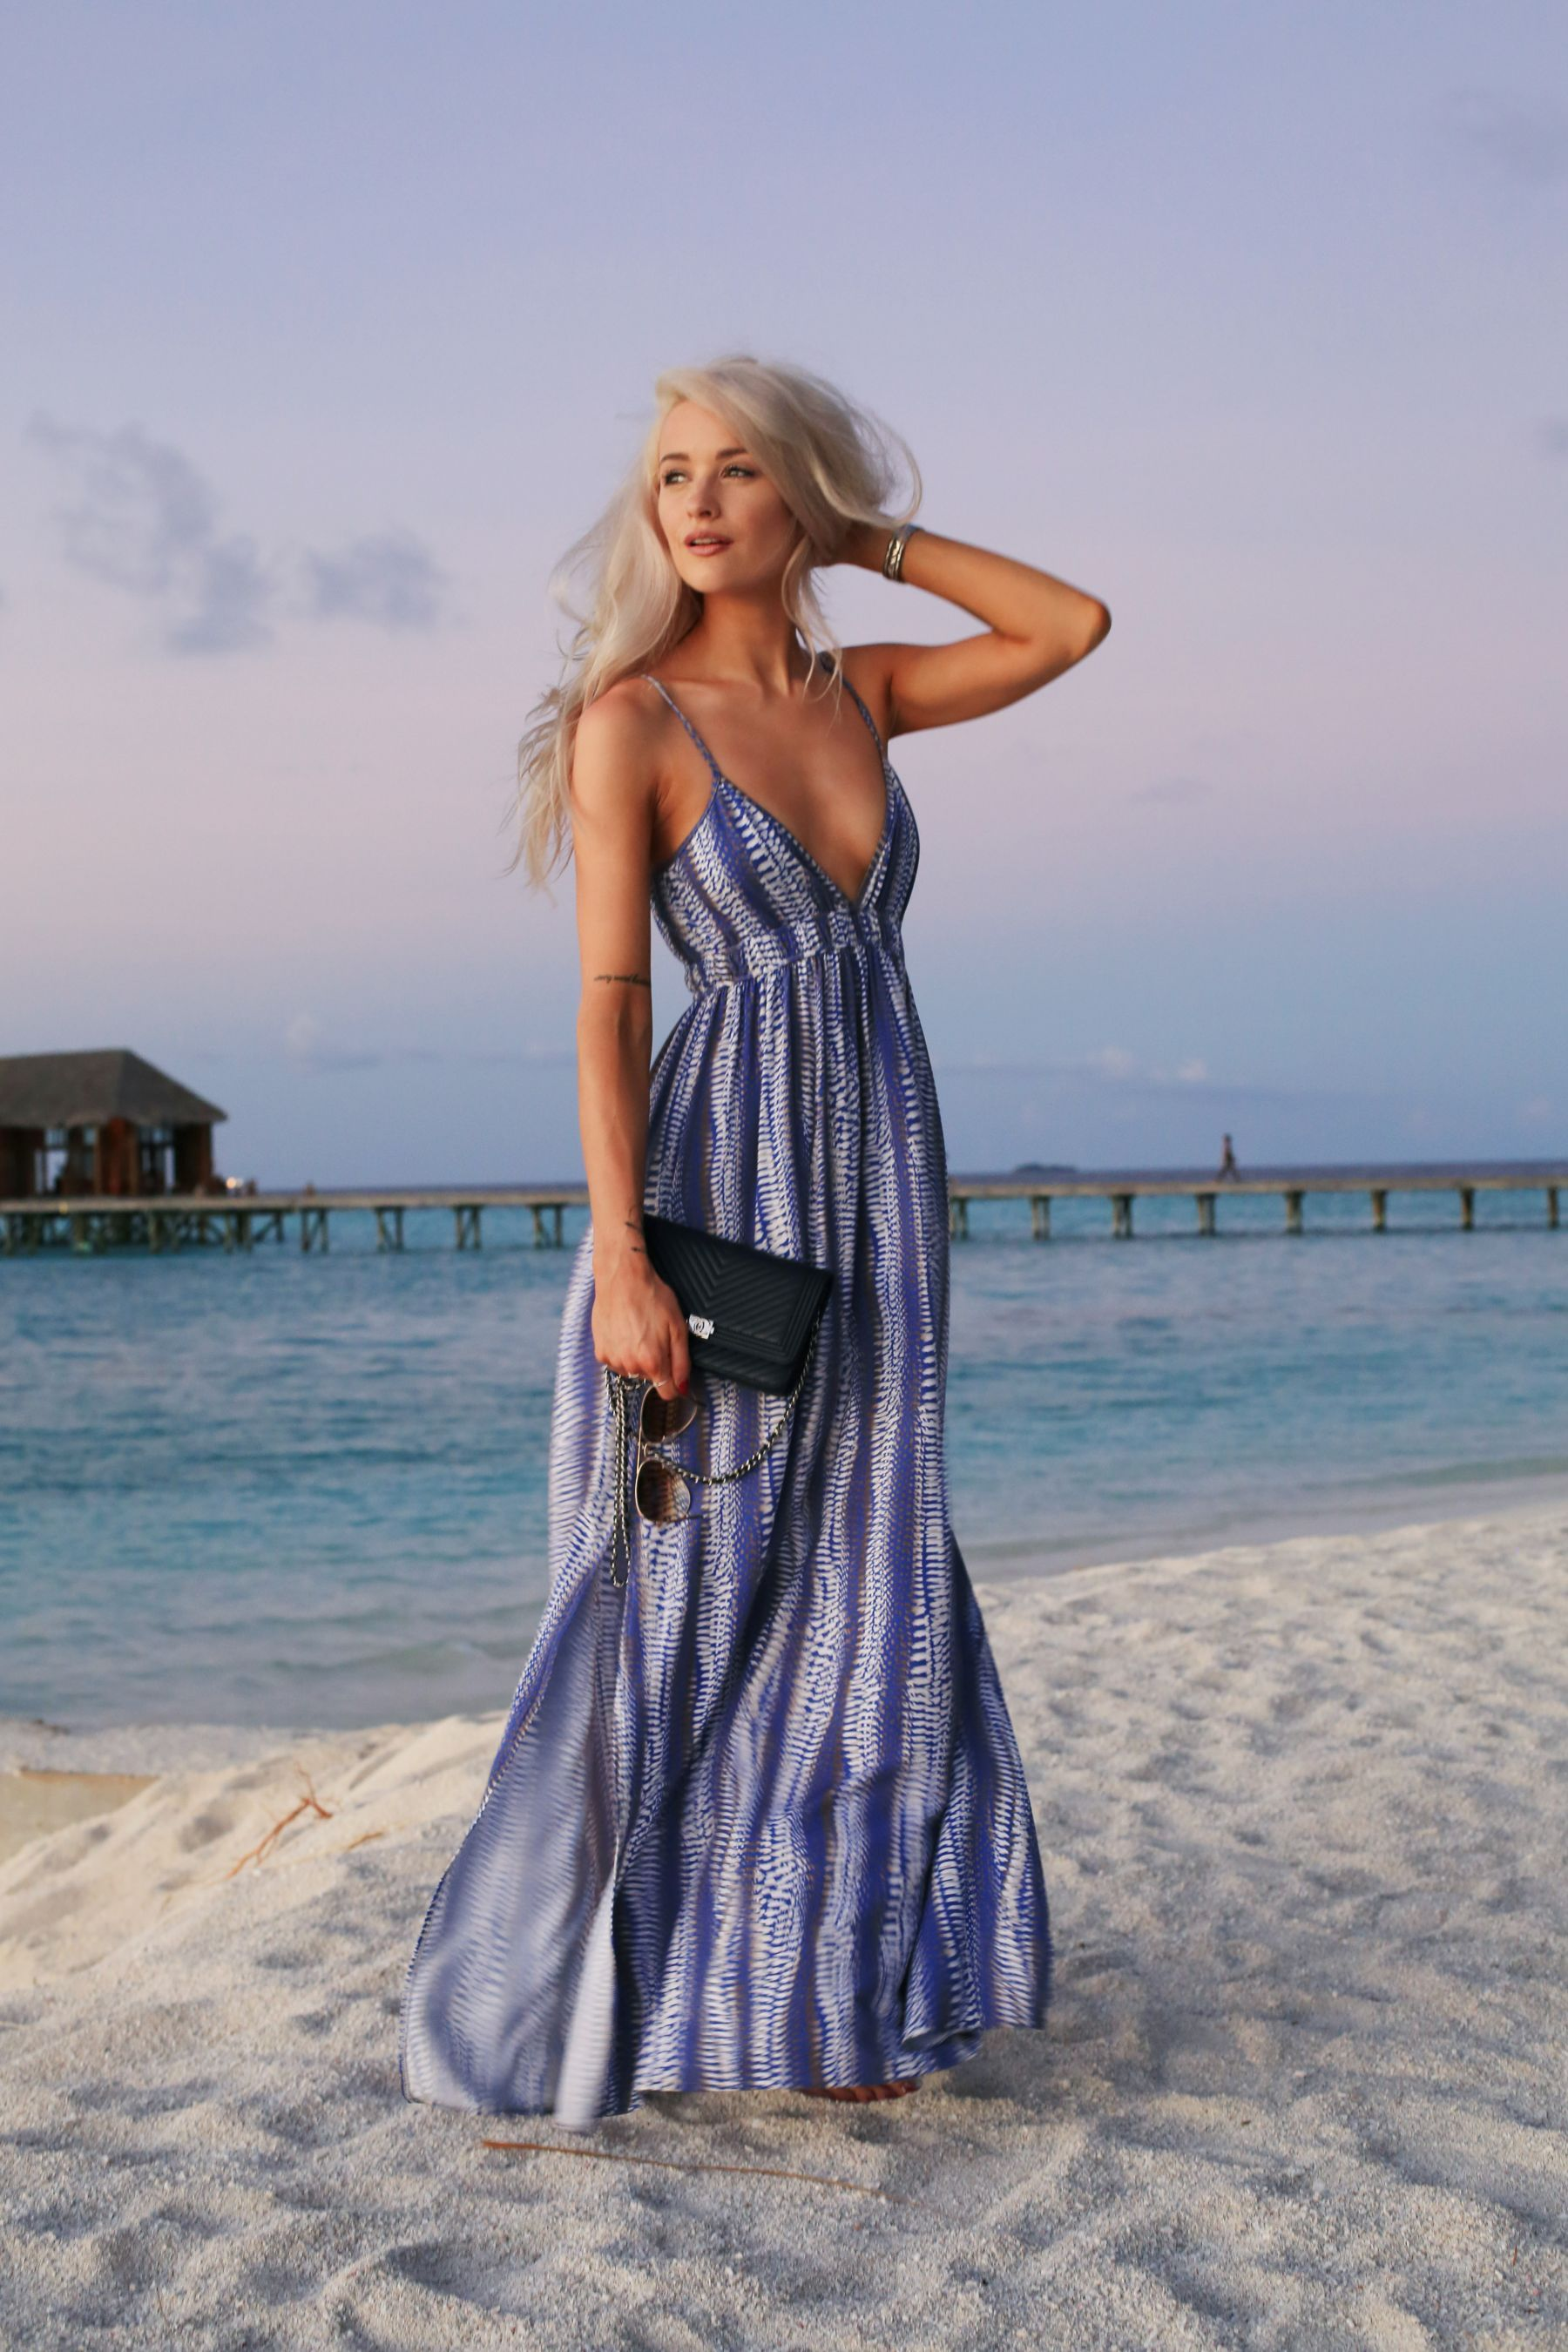 Evening Holiday Outfits: Maxis and Jumpsuits | Holiday outfits, 3 ...